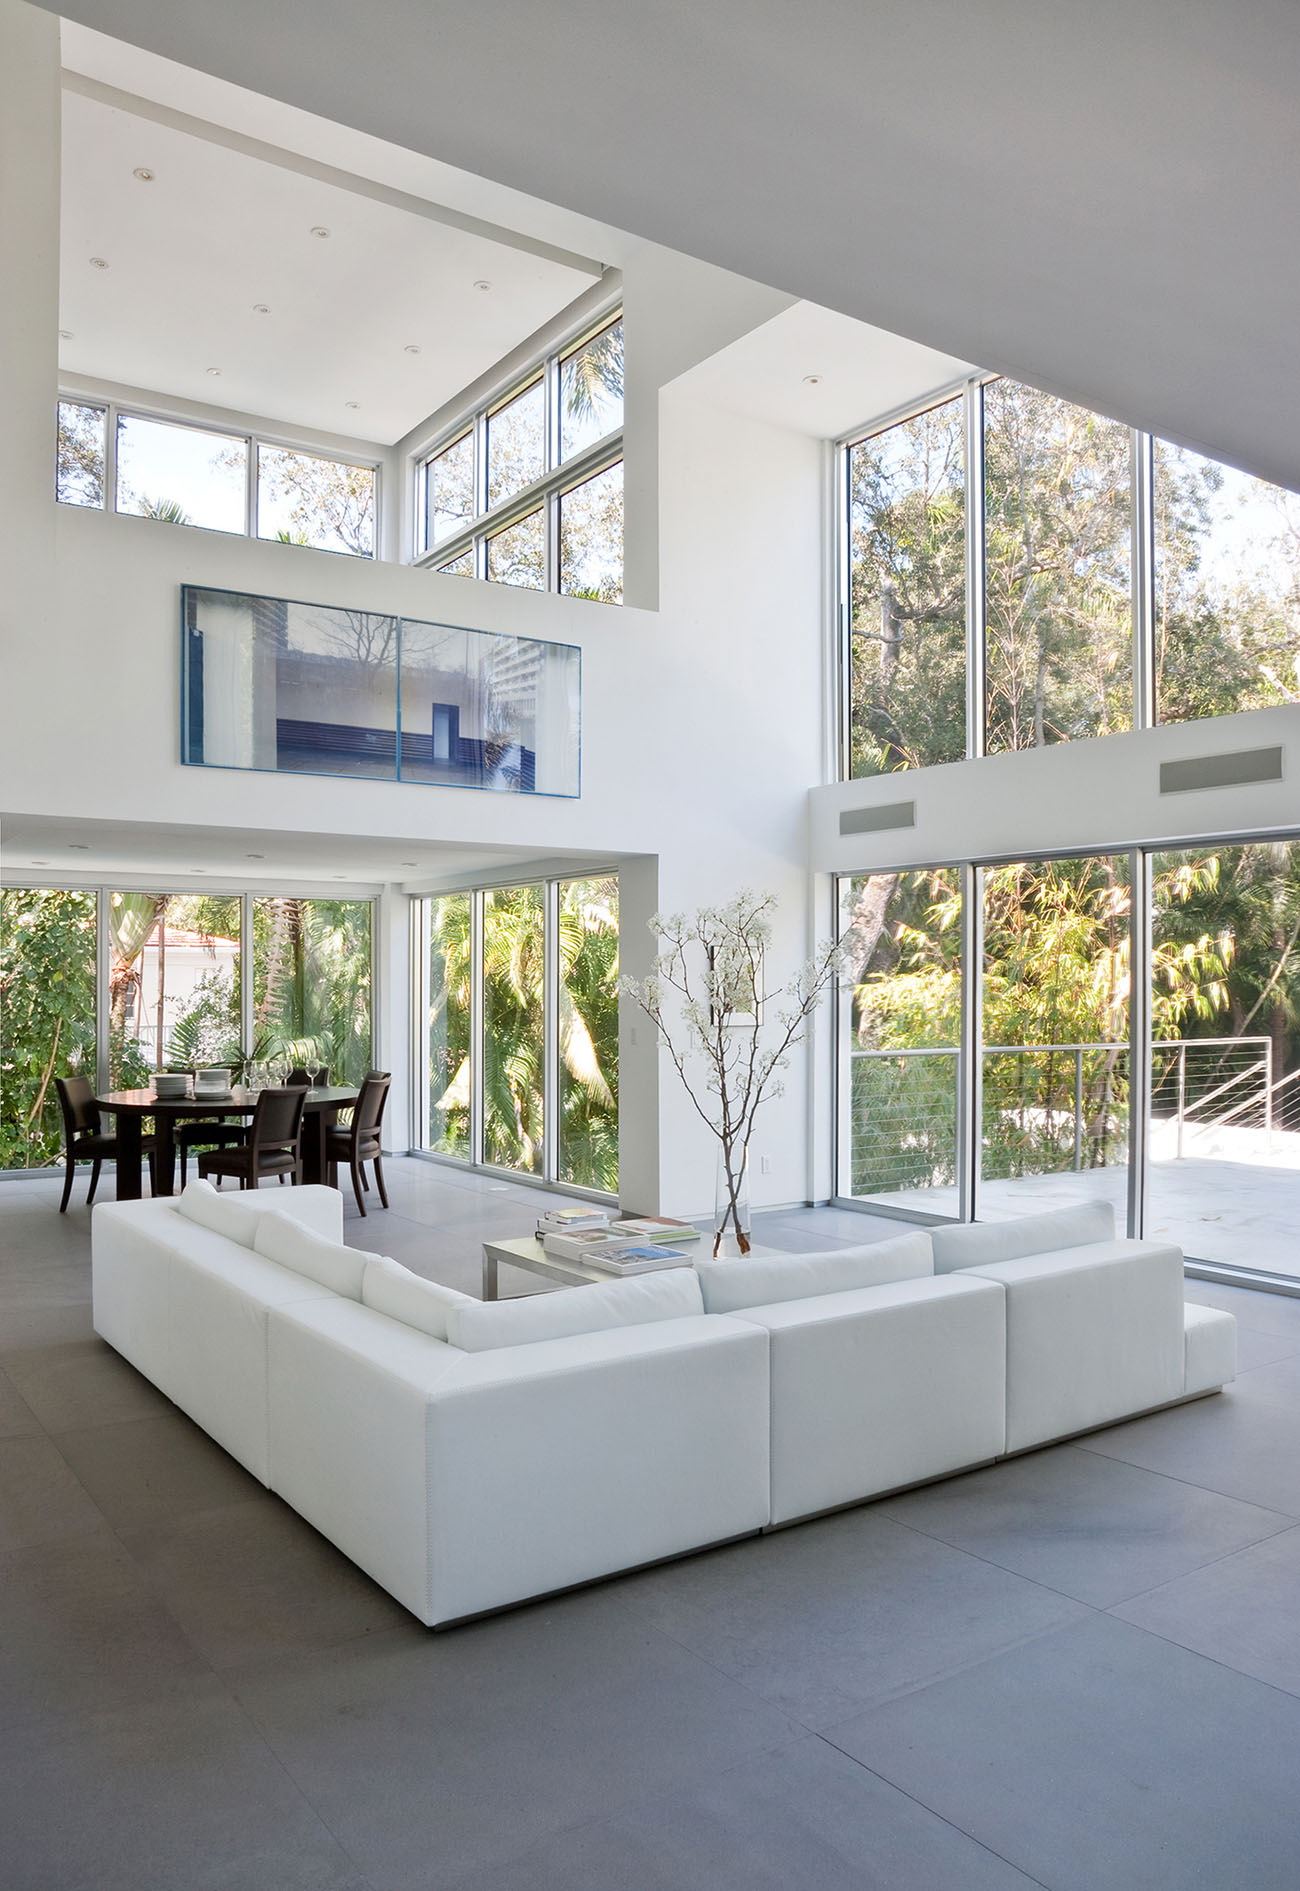 Calm and Minimalistic Spaces of Utopia Residence Coconut Grove by [STRANG] Architecture-03